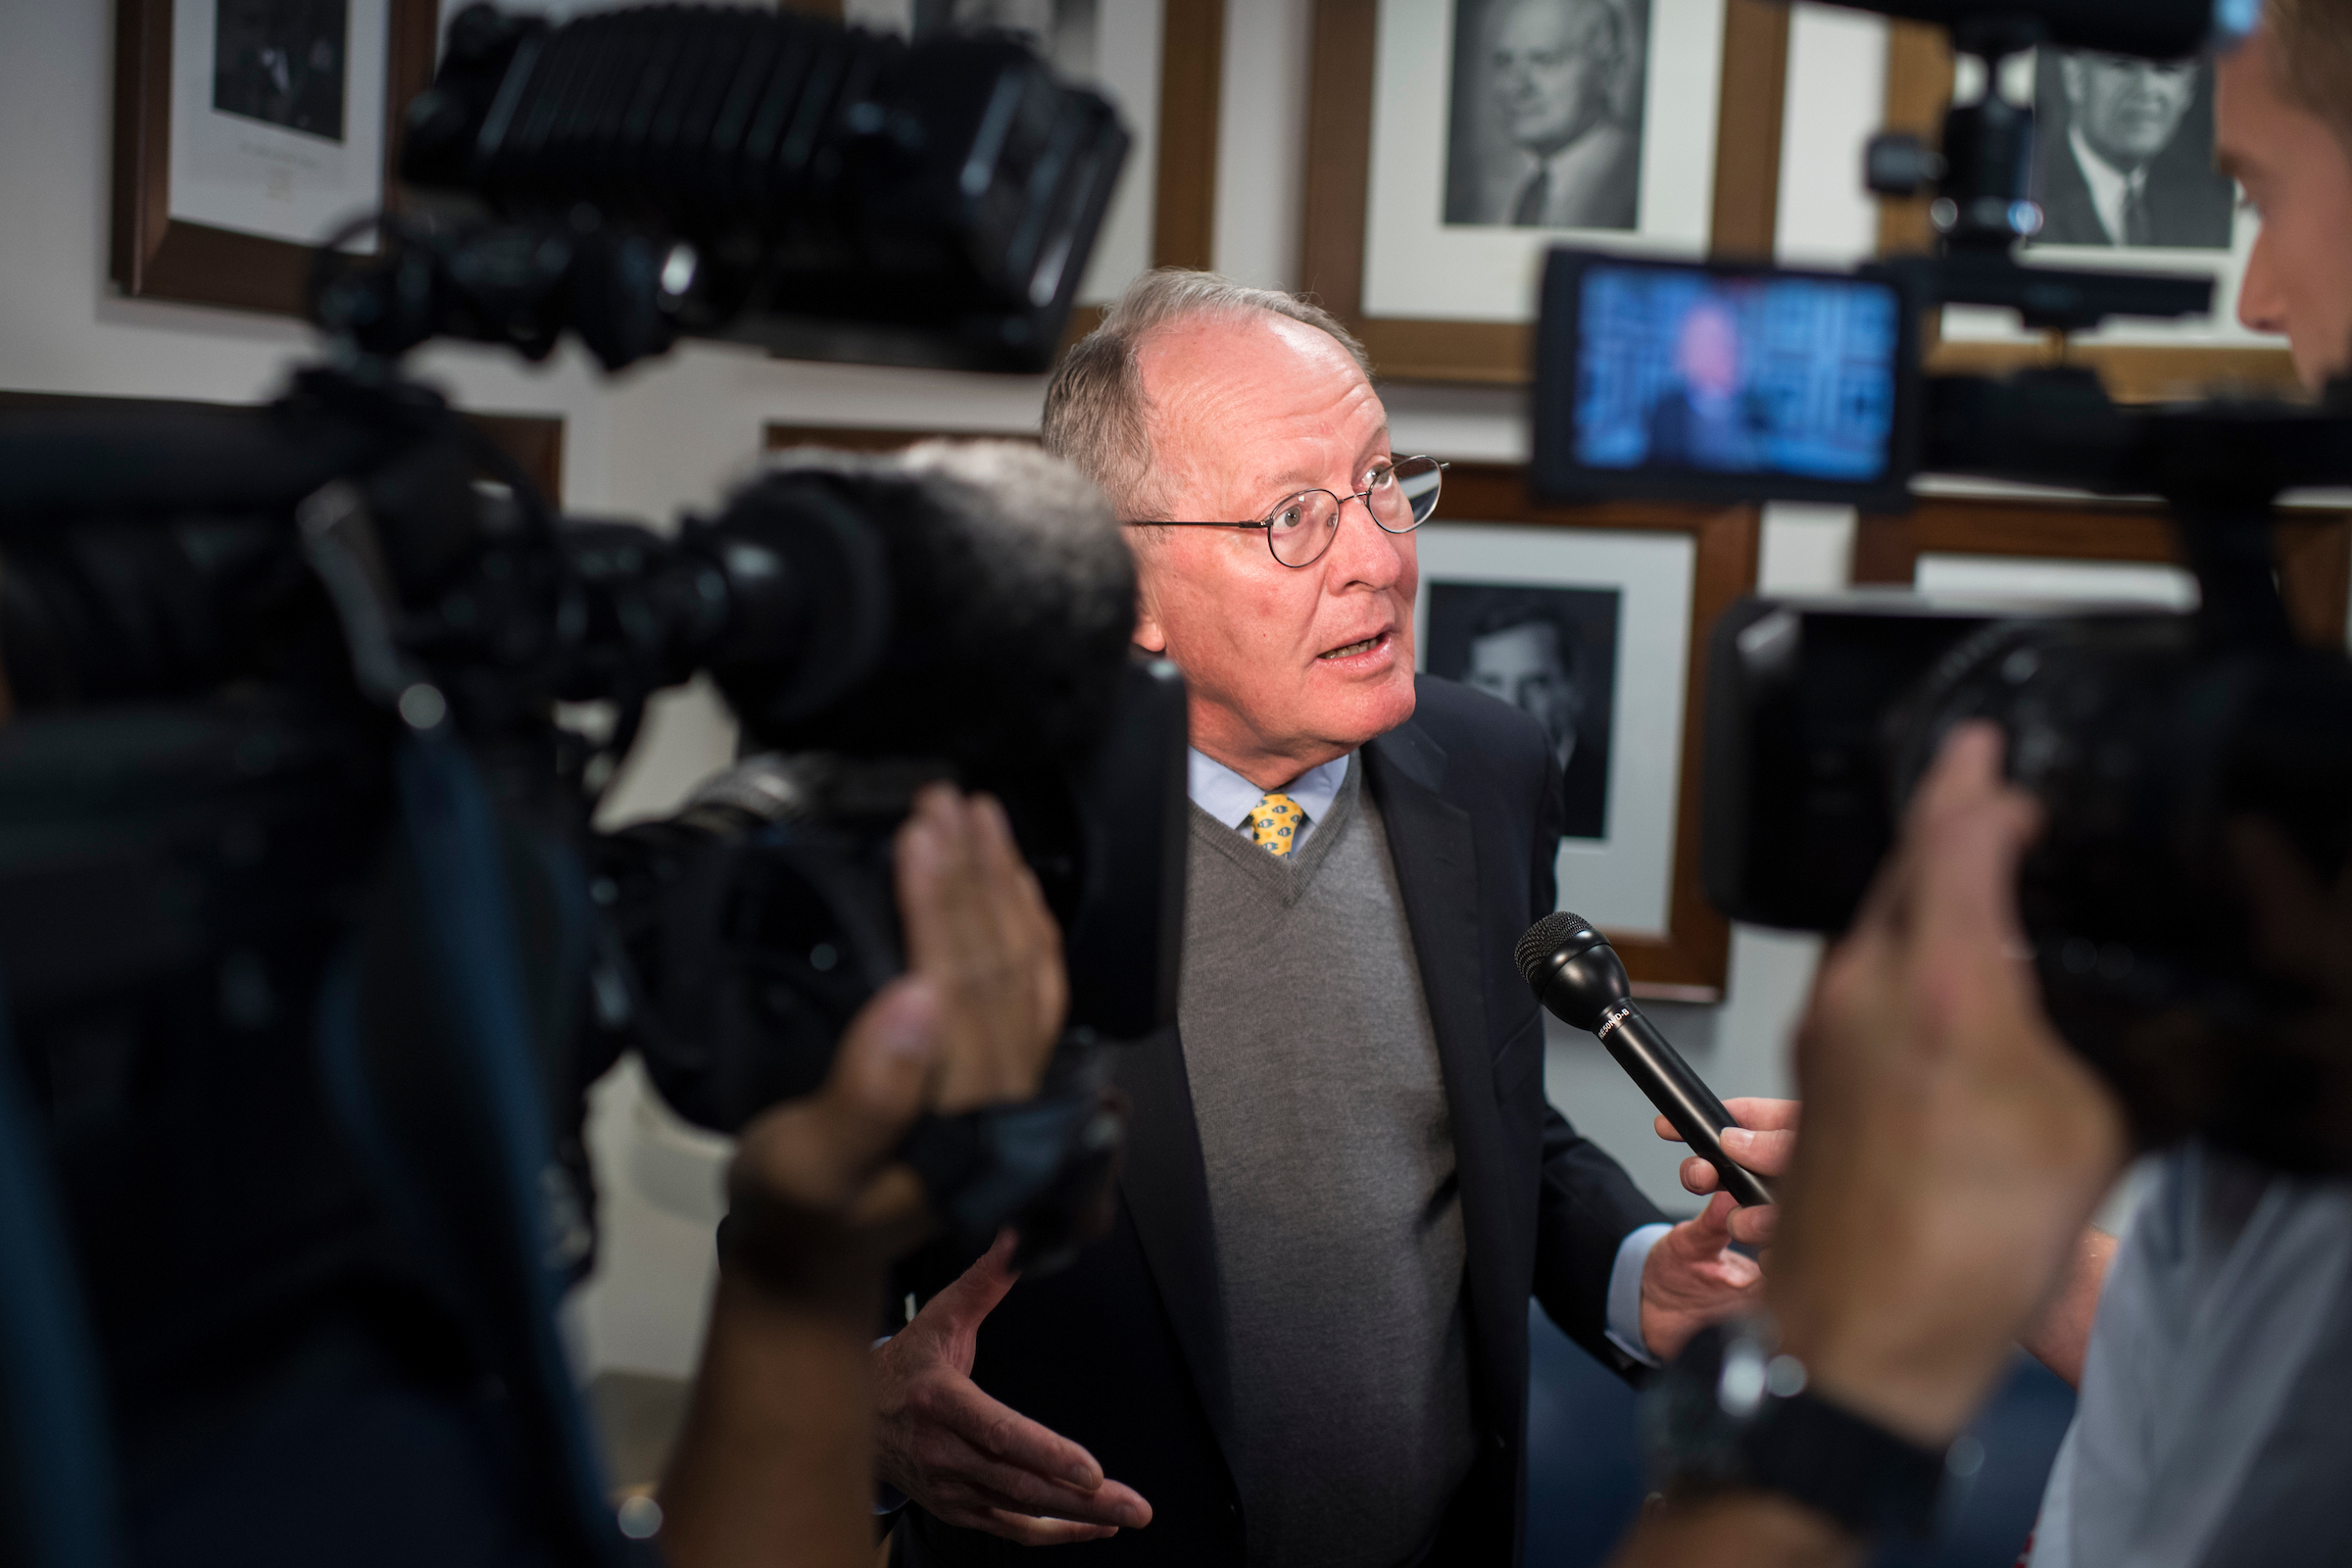 UNITED STATES - OCTOBER 18: Chairman Lamar Alexander, R-Tenn., talks with reporters after a Senate Health, Education, Labor and Pensions Committee markup in Dirksen Building on October 18, 2017. (Photo By Tom Williams/CQ Roll Call)